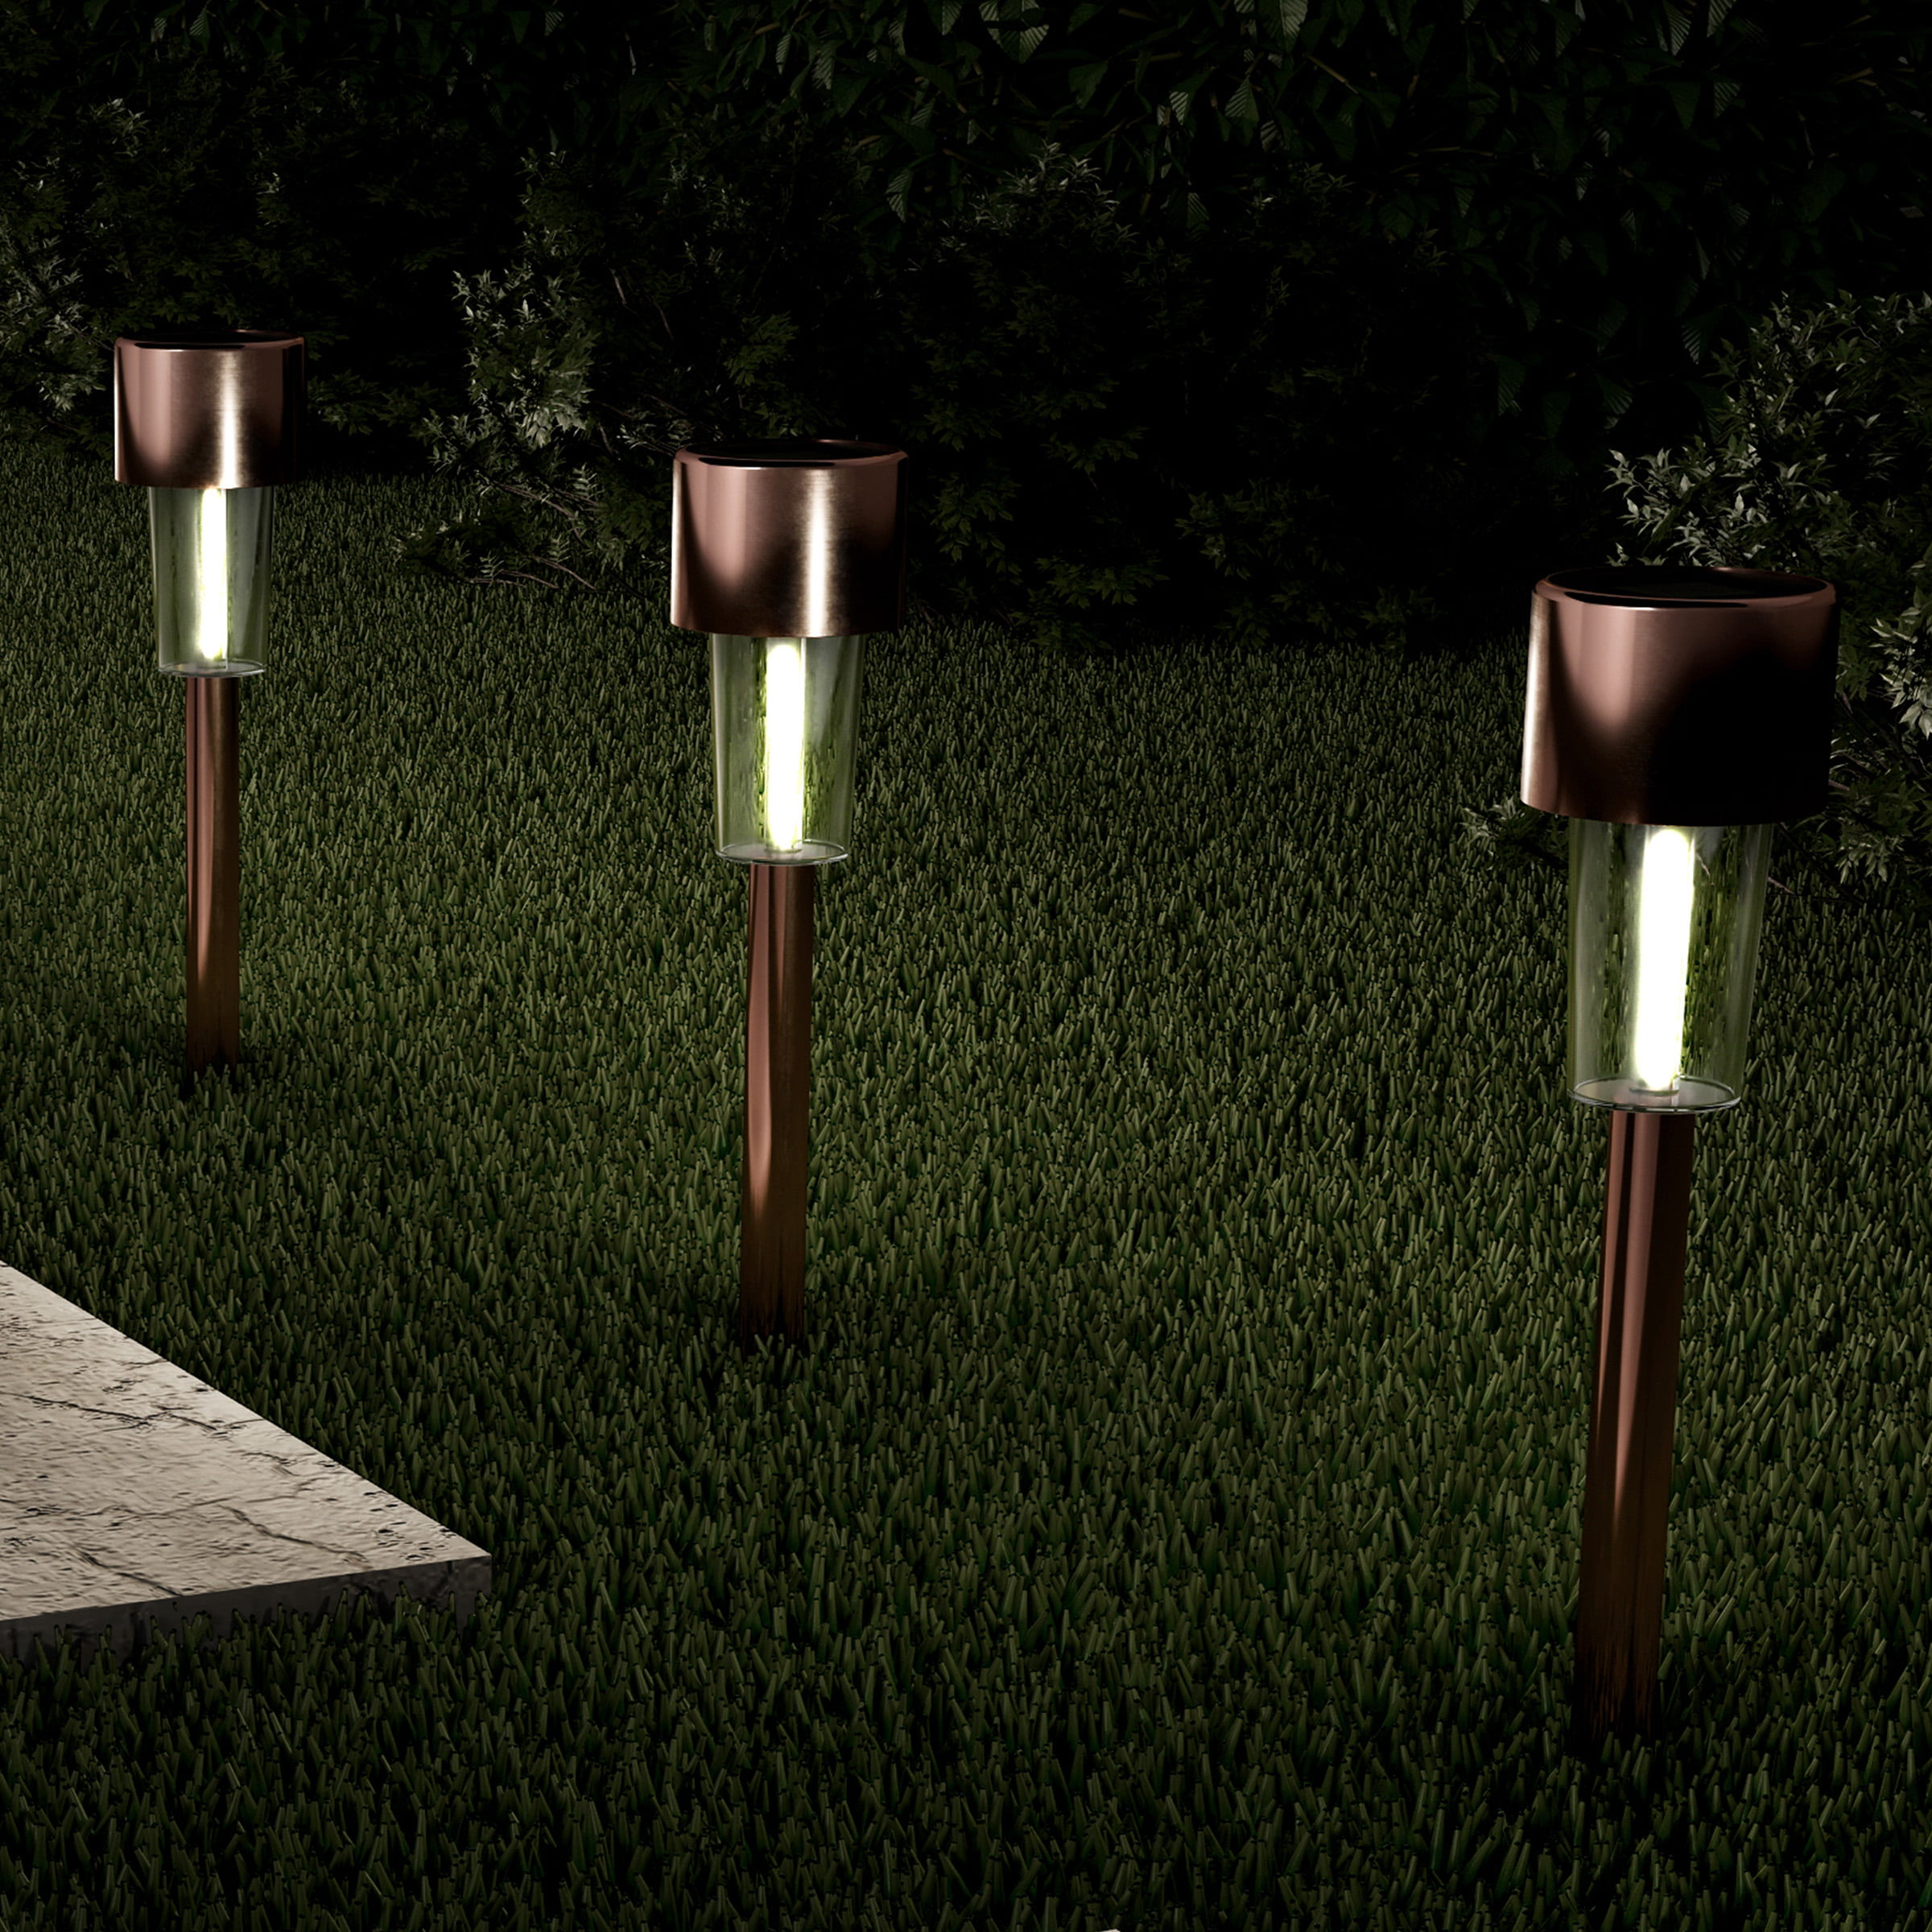 Bronze Outdoor Path Light Low Voltage LED Weather-Resistant Metal Stake Walkway